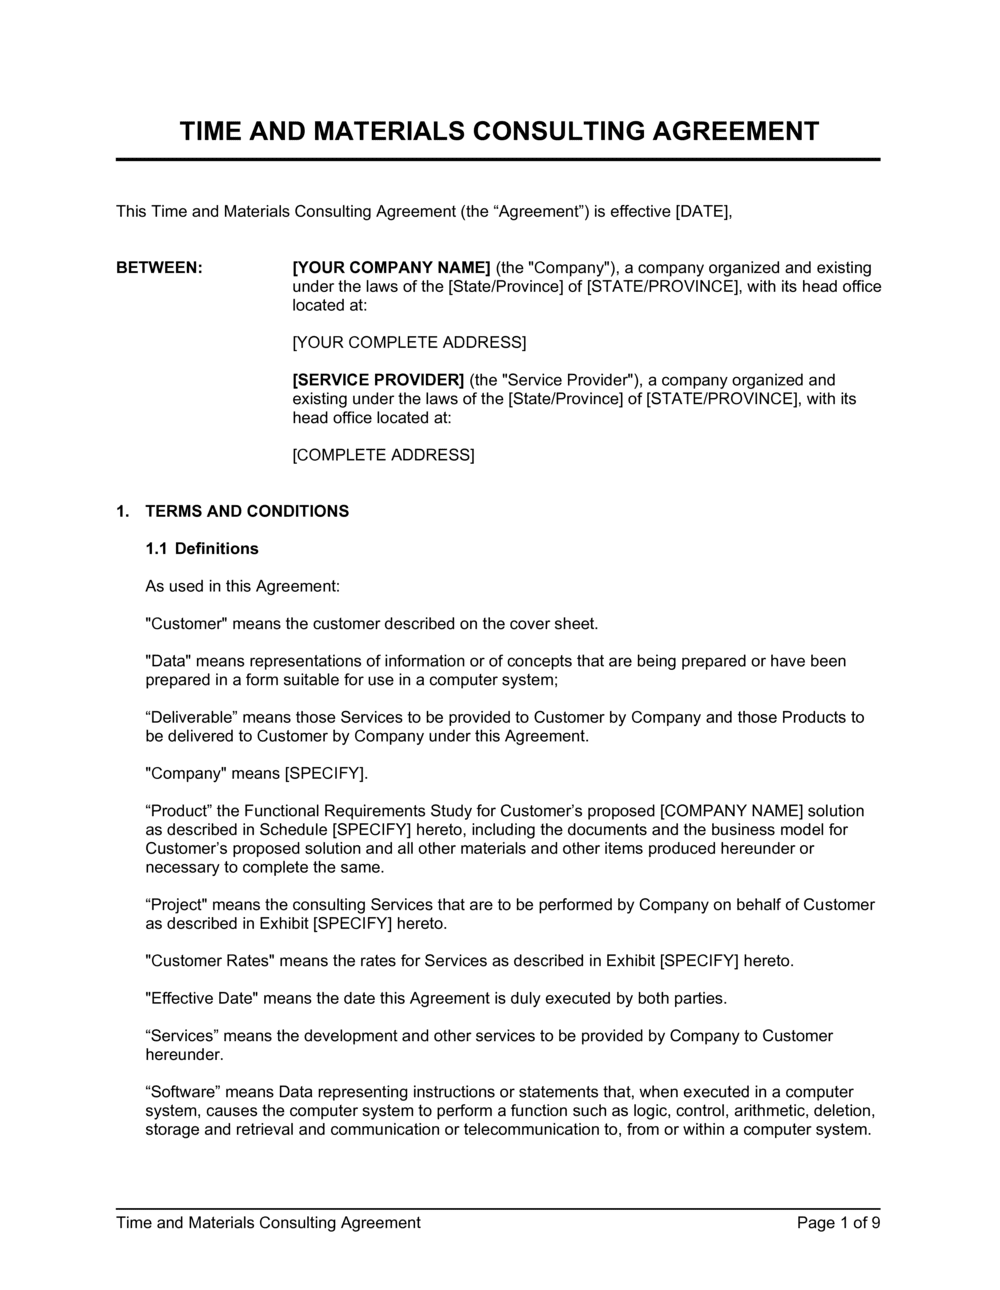 Business-in-a-Box's Time and Materials Consulting Agreement Template